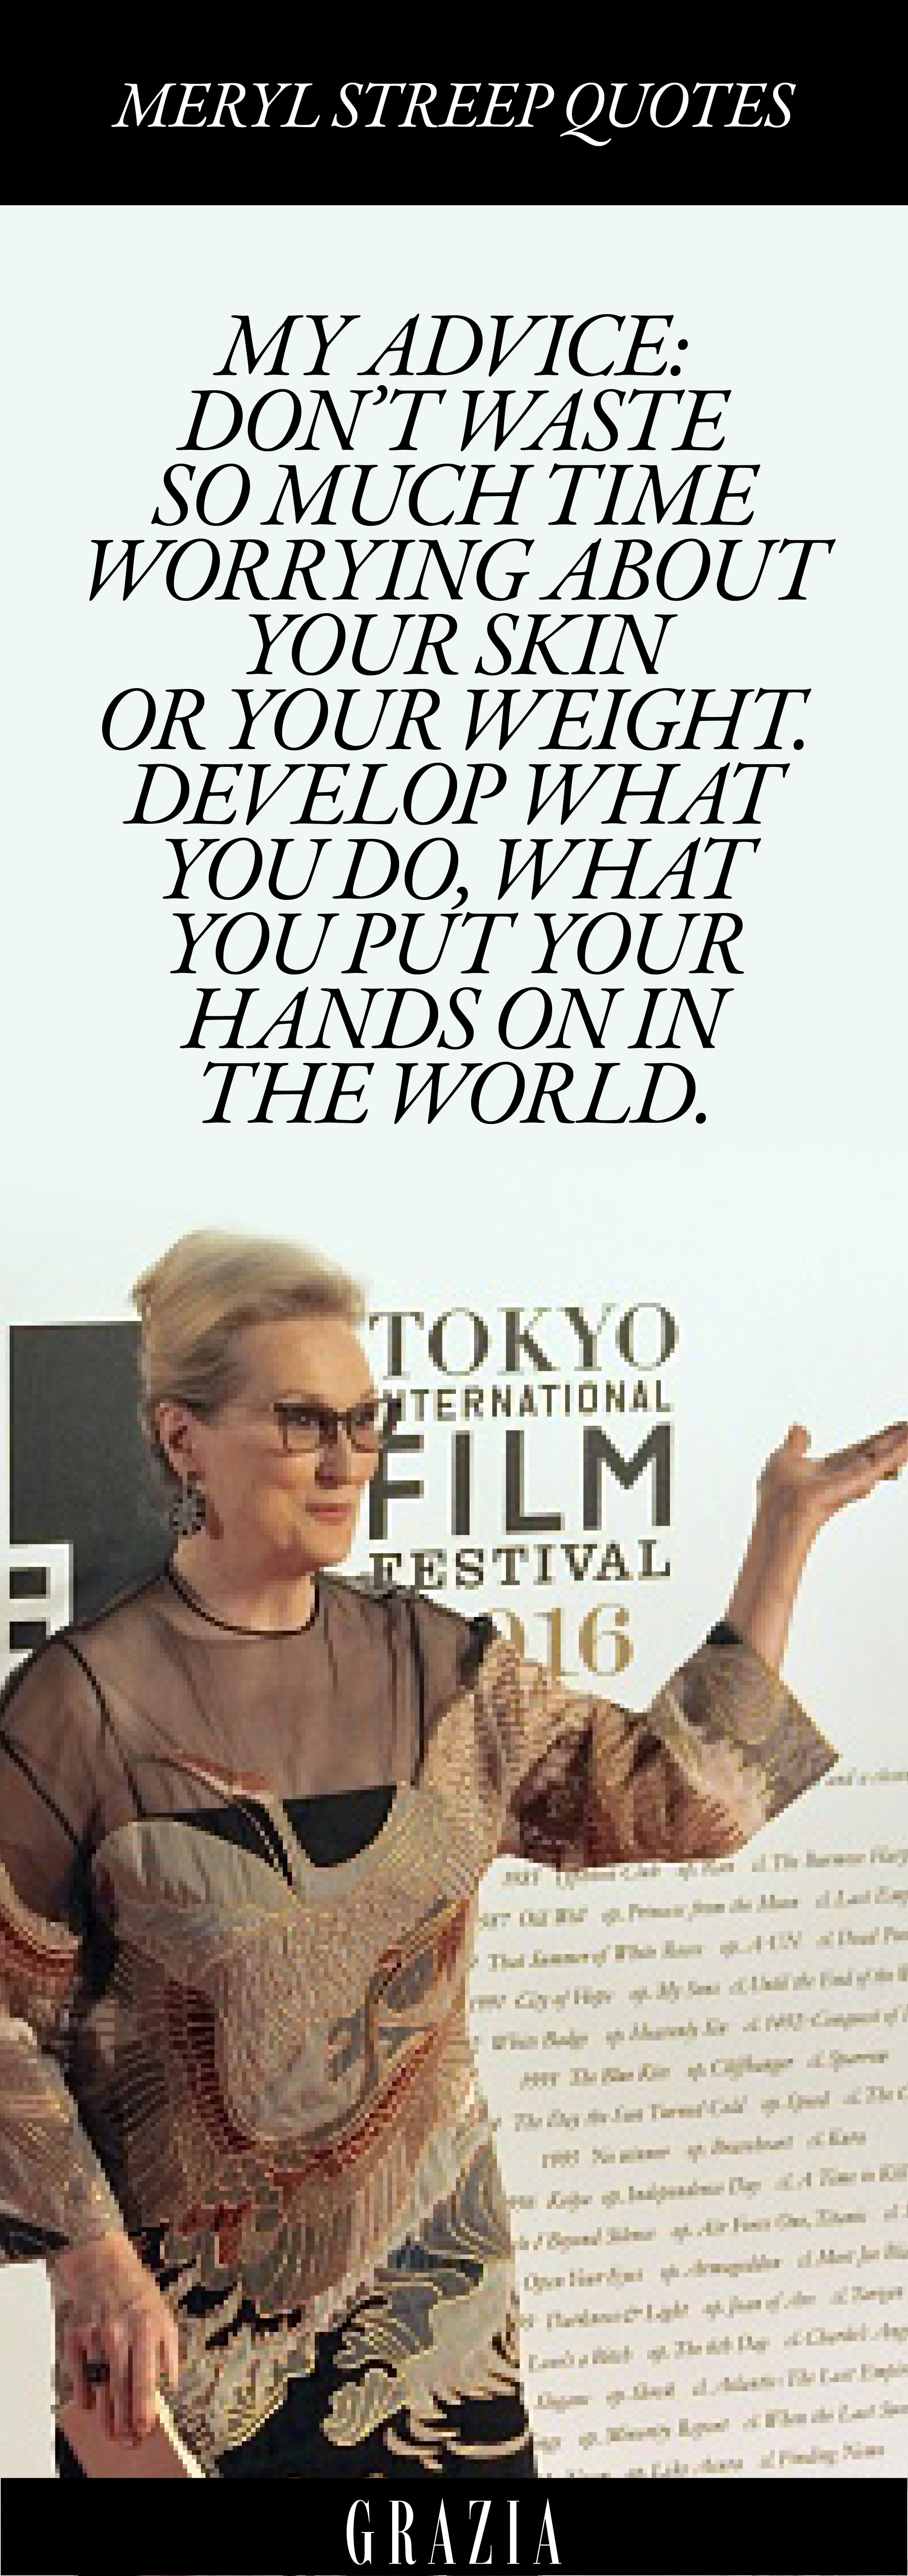 19 Meryl Streep Quotes To Live Your Life By